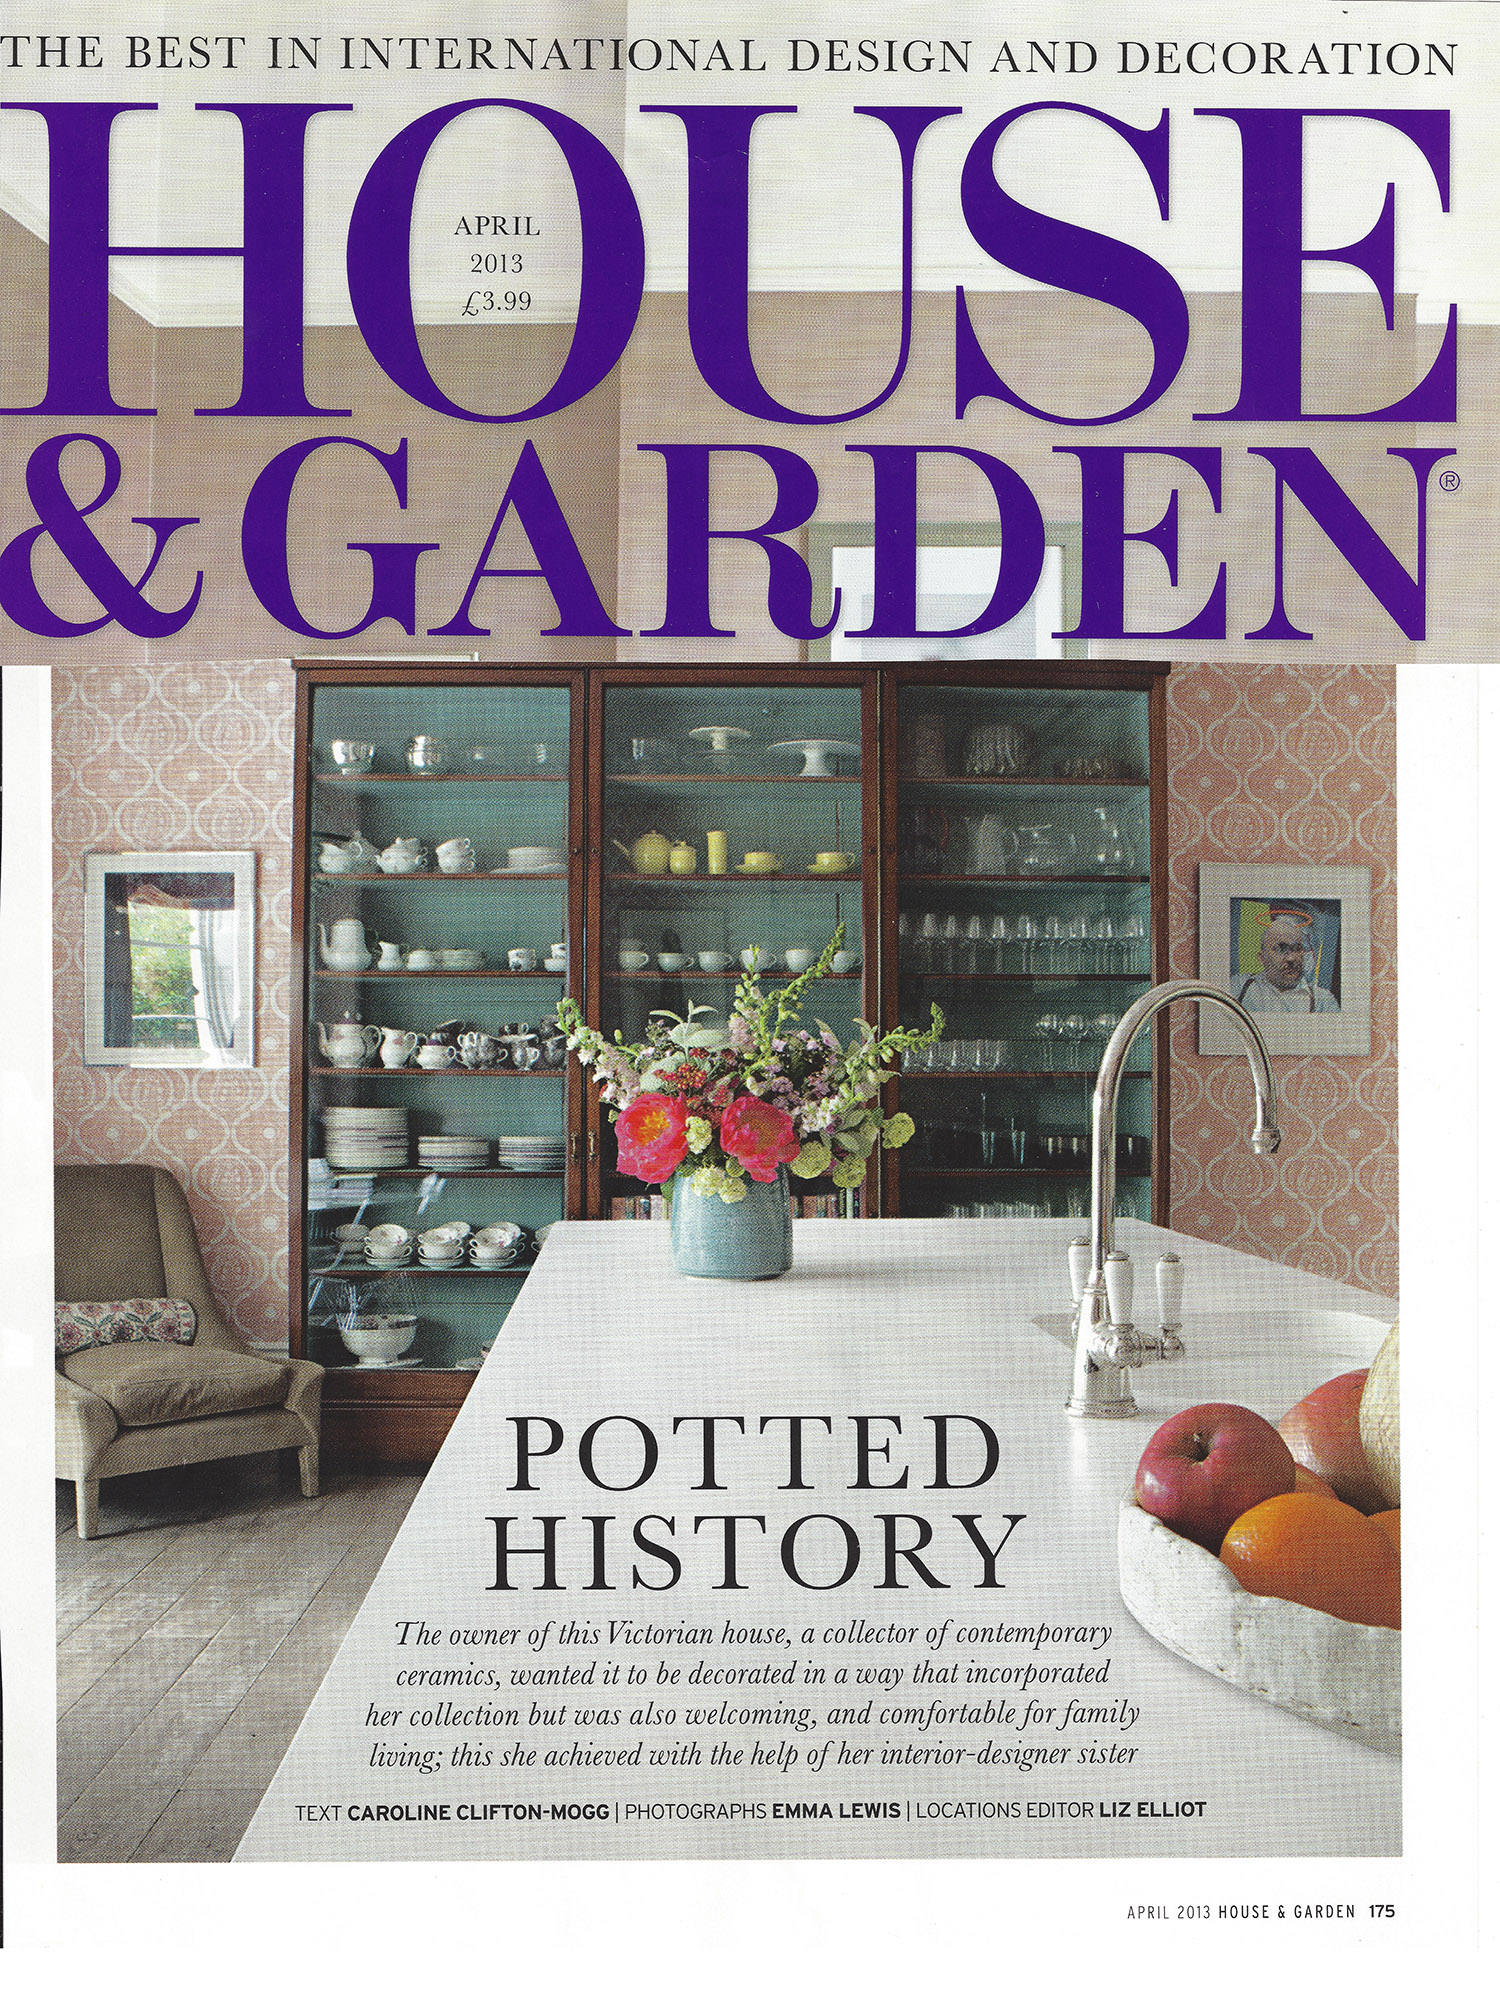 2013 April-House & Garden Page 1 of 2.jpeg